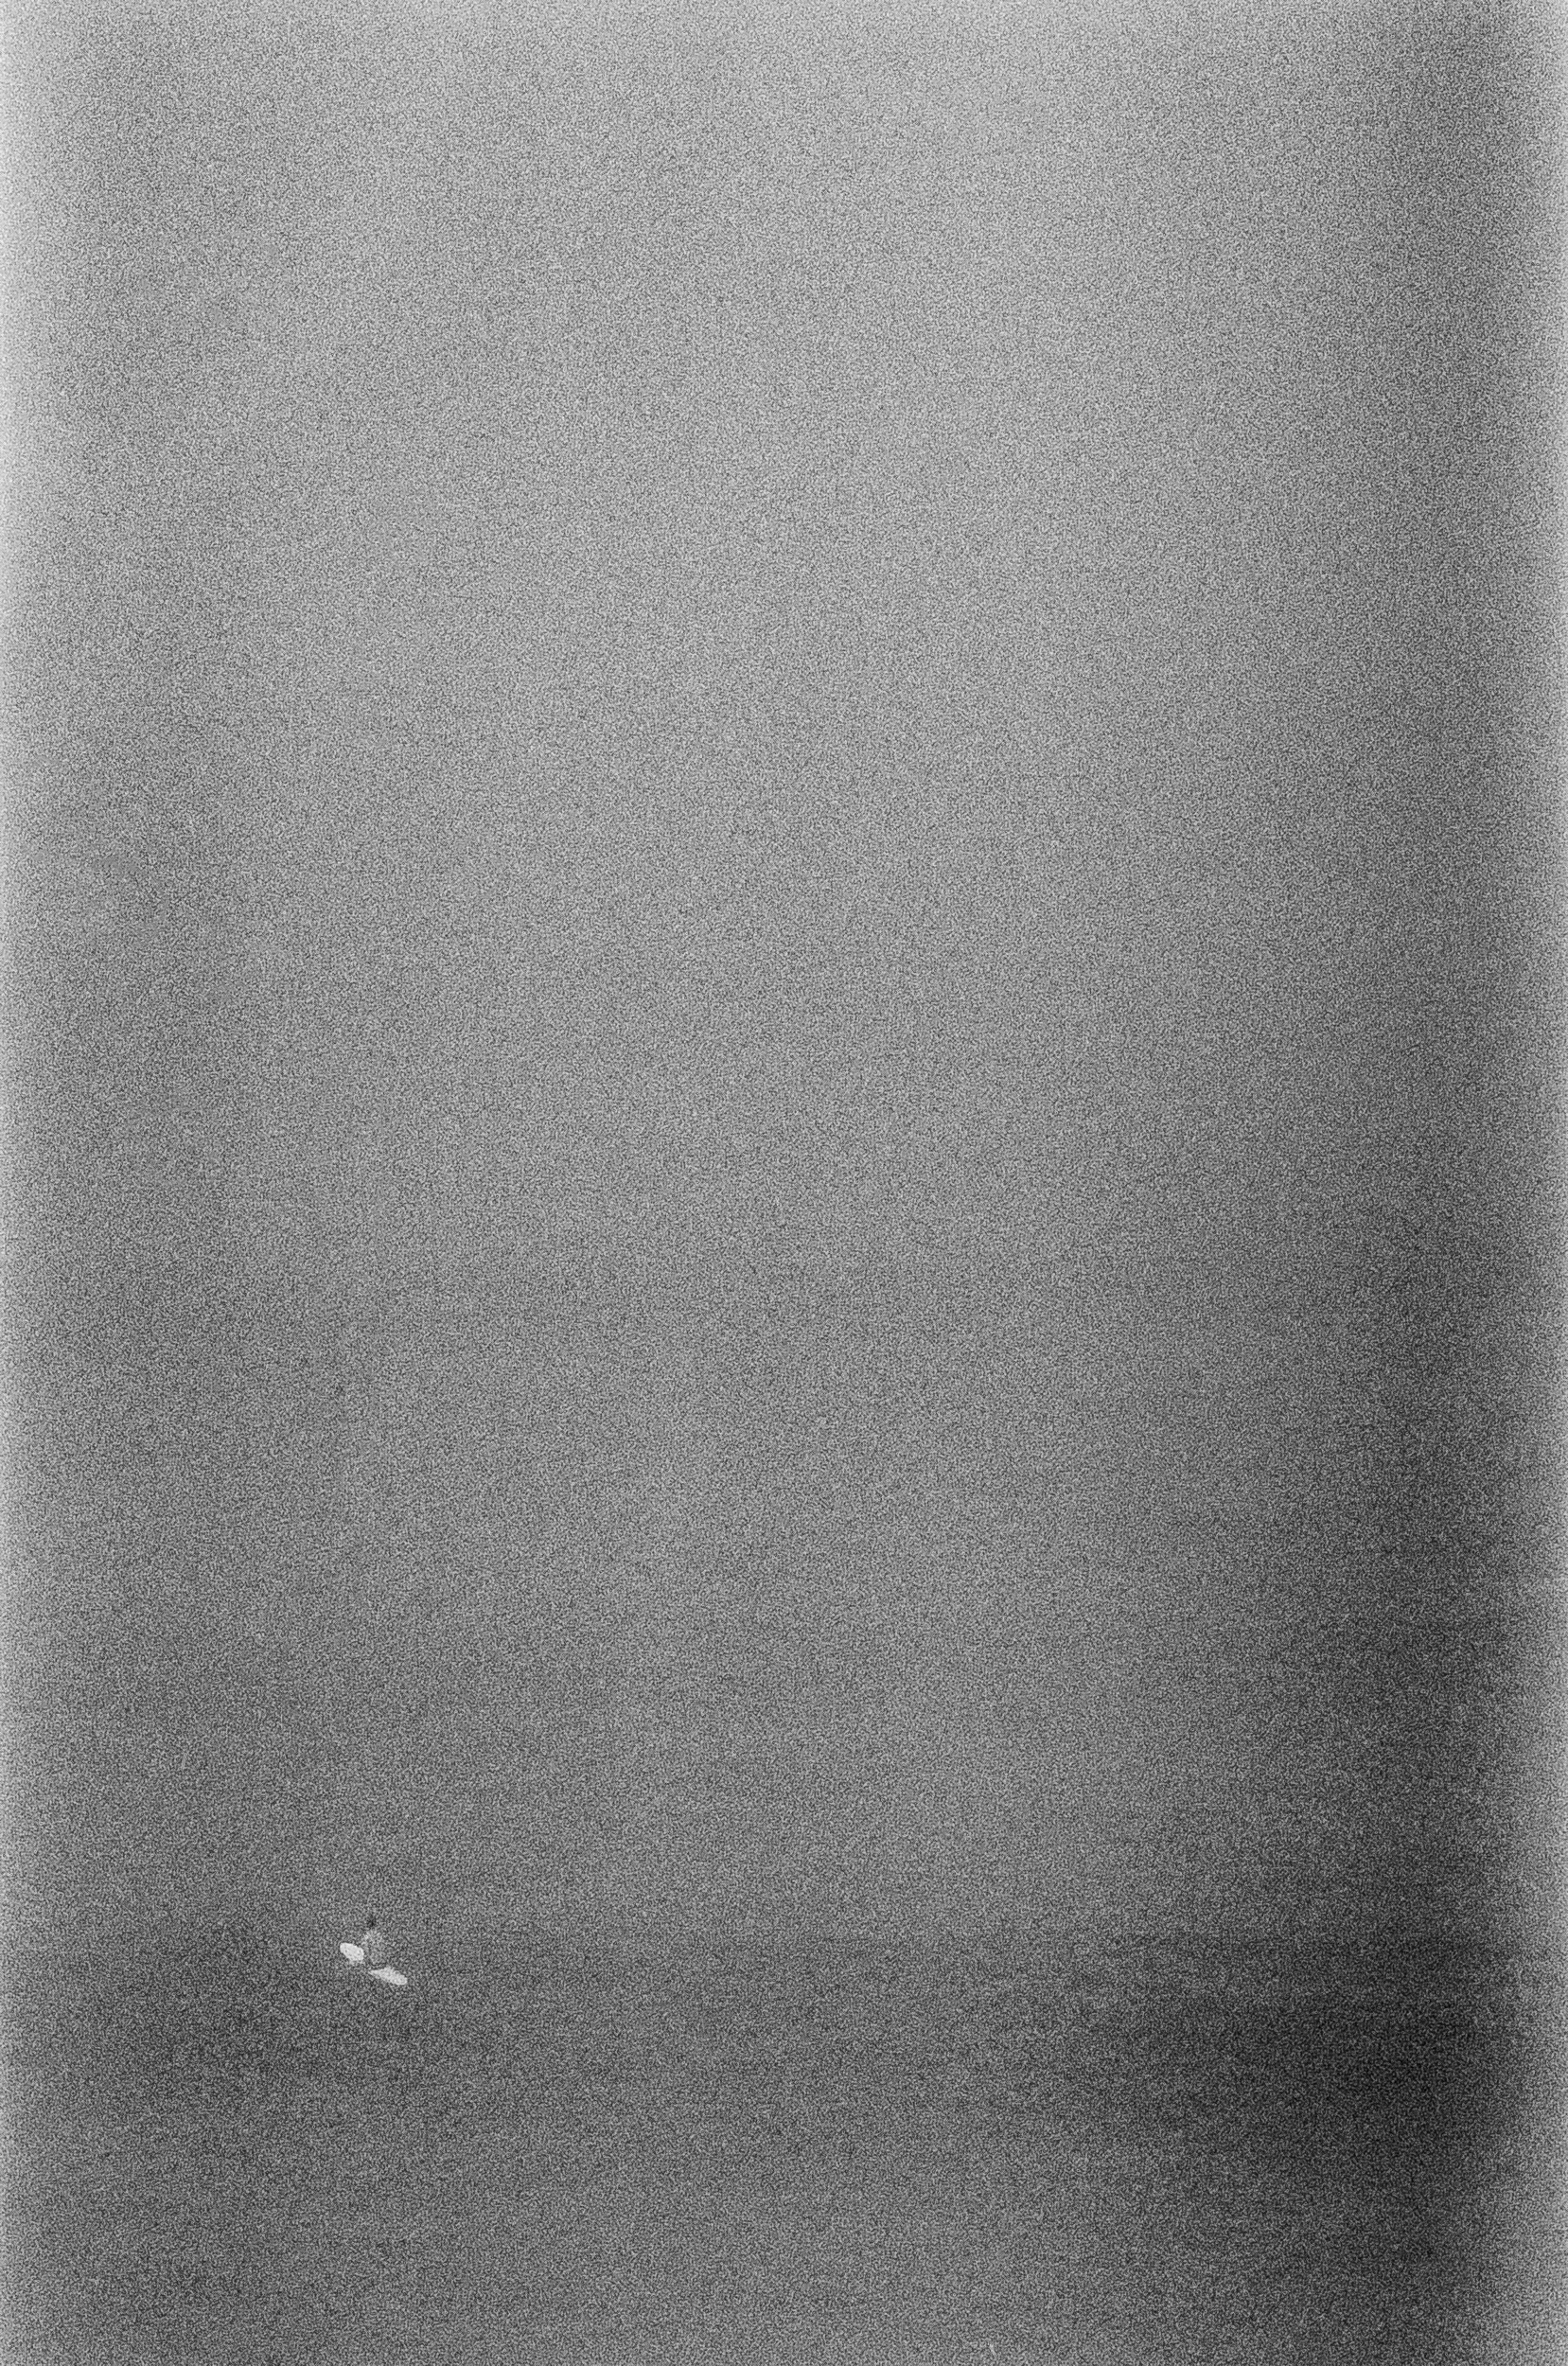 Fog on film